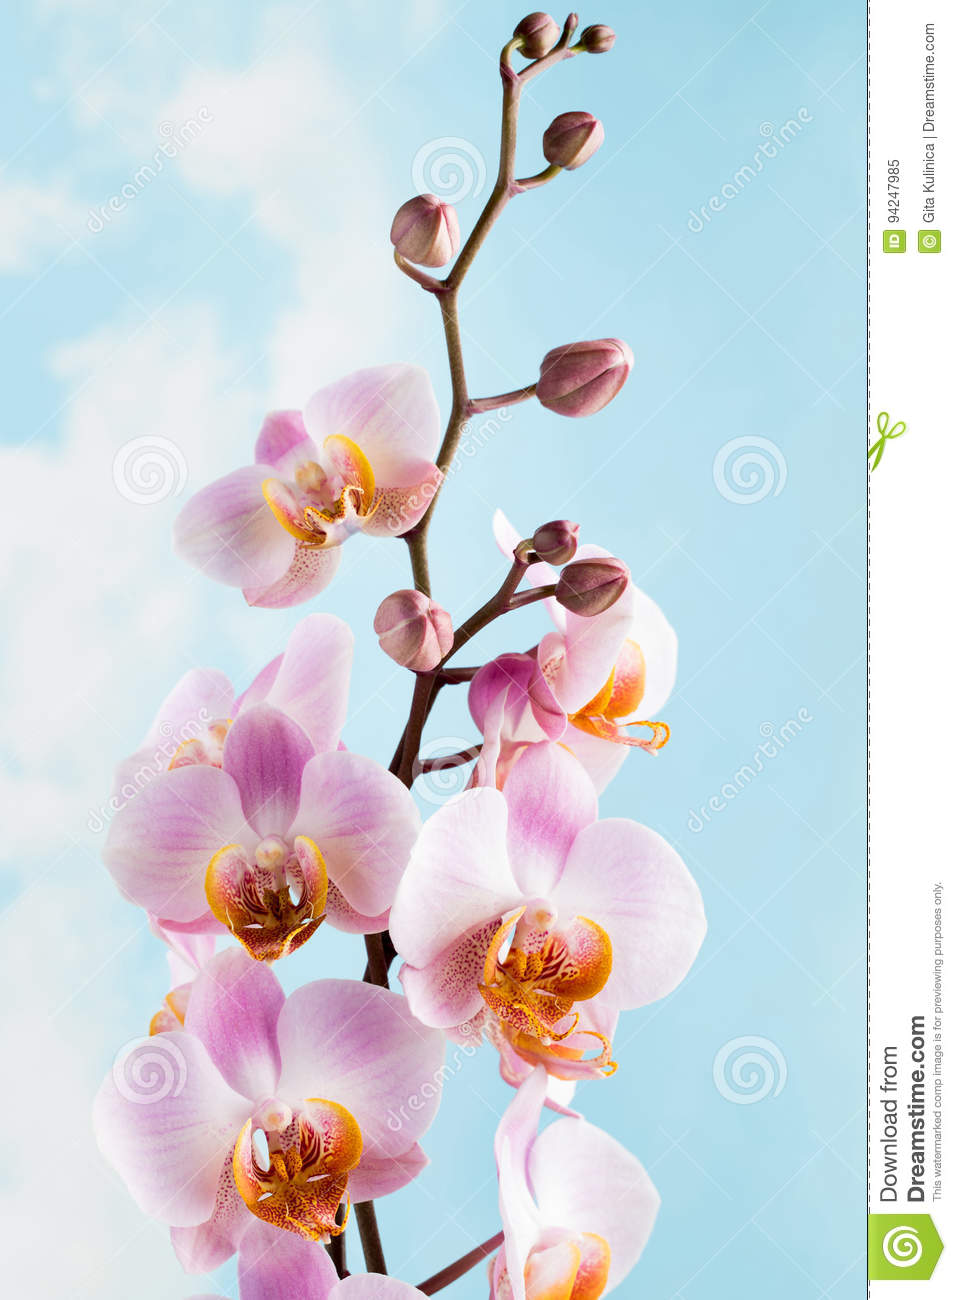 Pink orchid on the grey background stock image image of flower download pink orchid on the grey background stock image image of flower symbol mightylinksfo